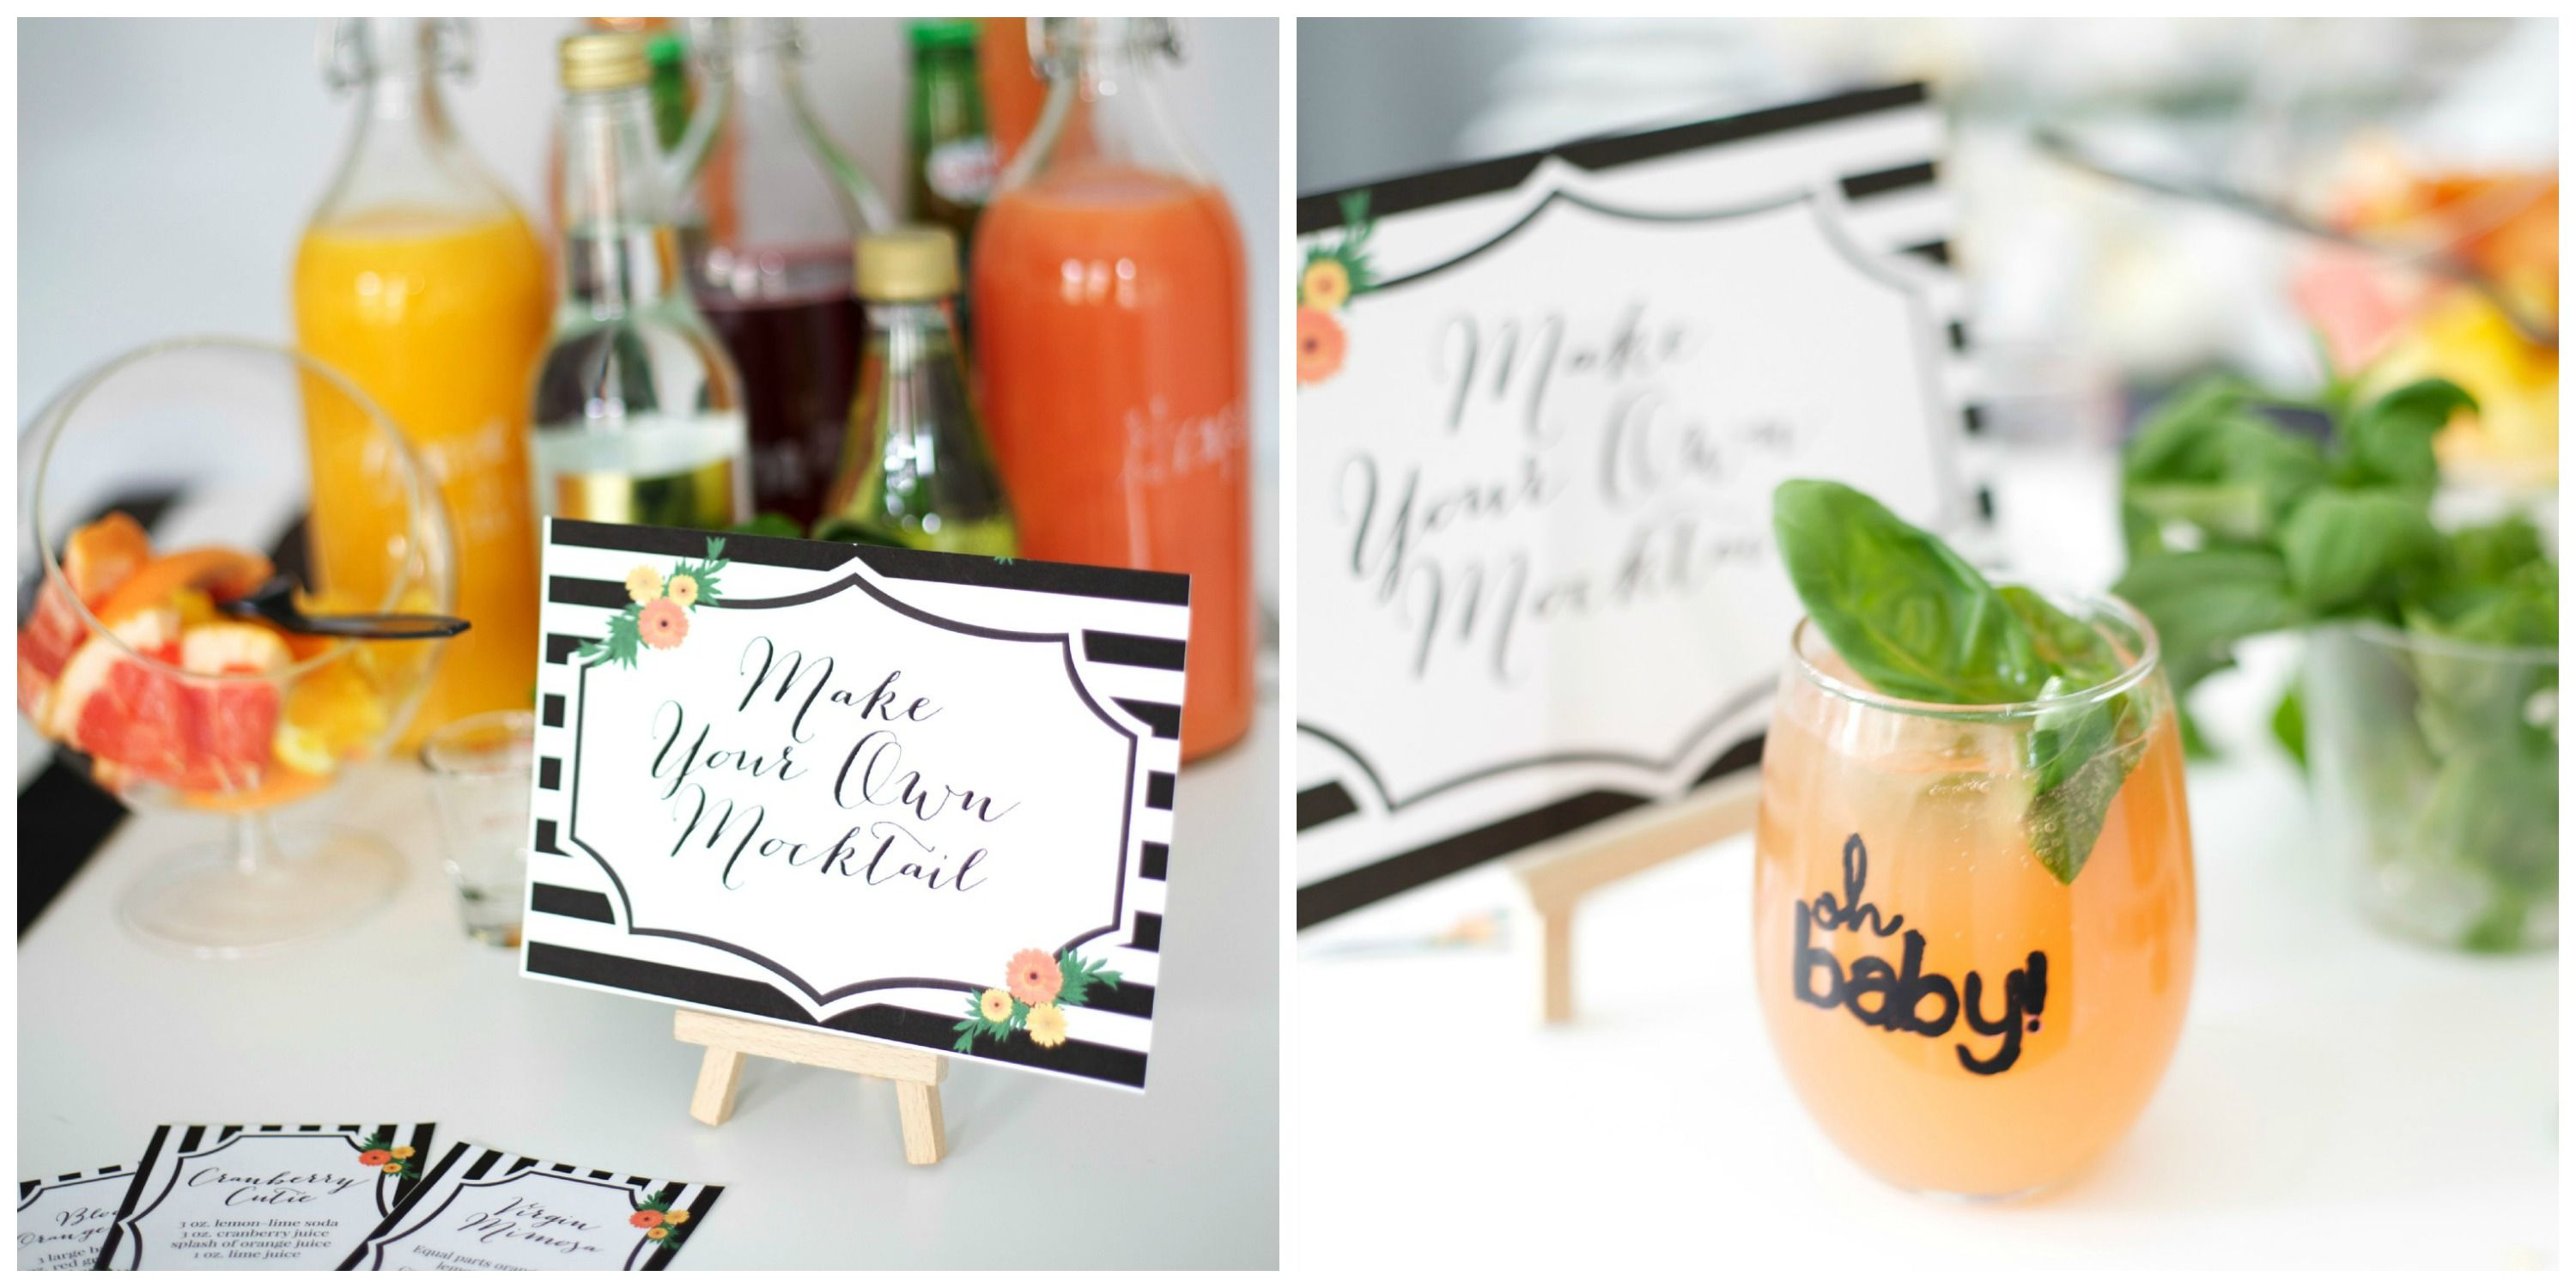 a fun make your own mocktail bar for a baby shower via